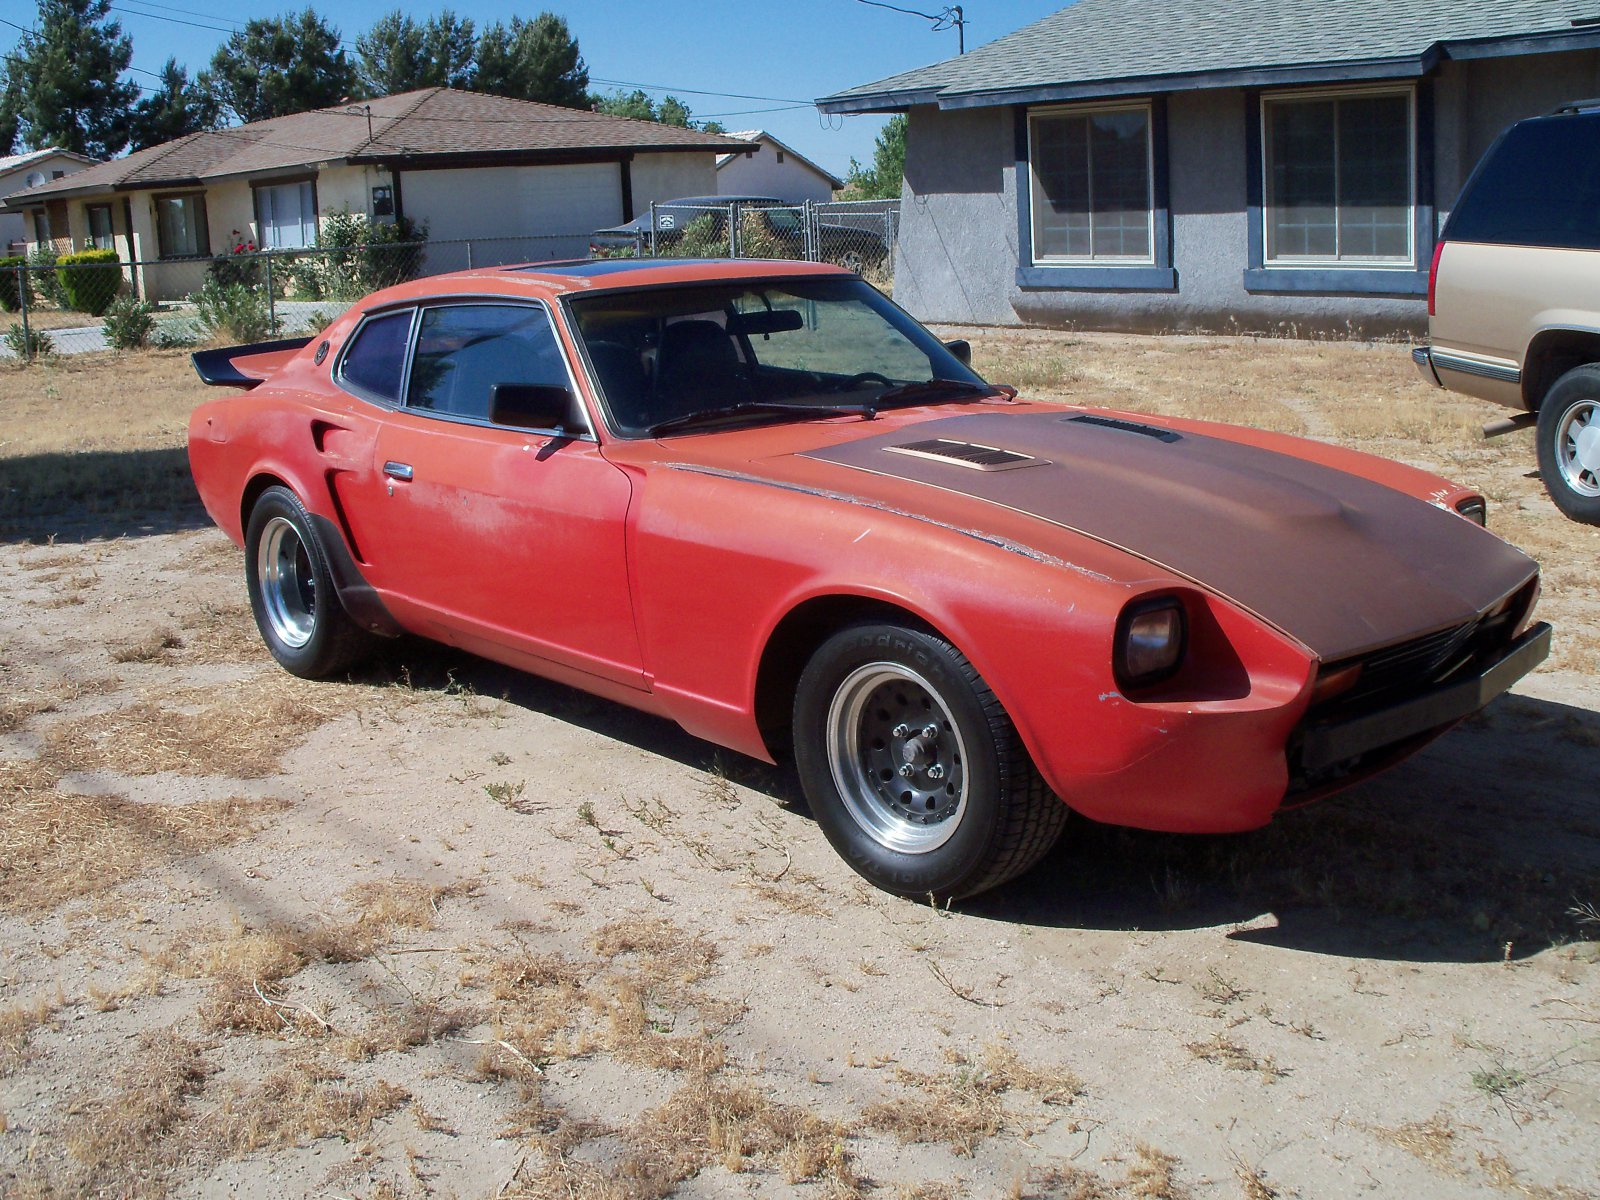 JCR body kit called the California Z.